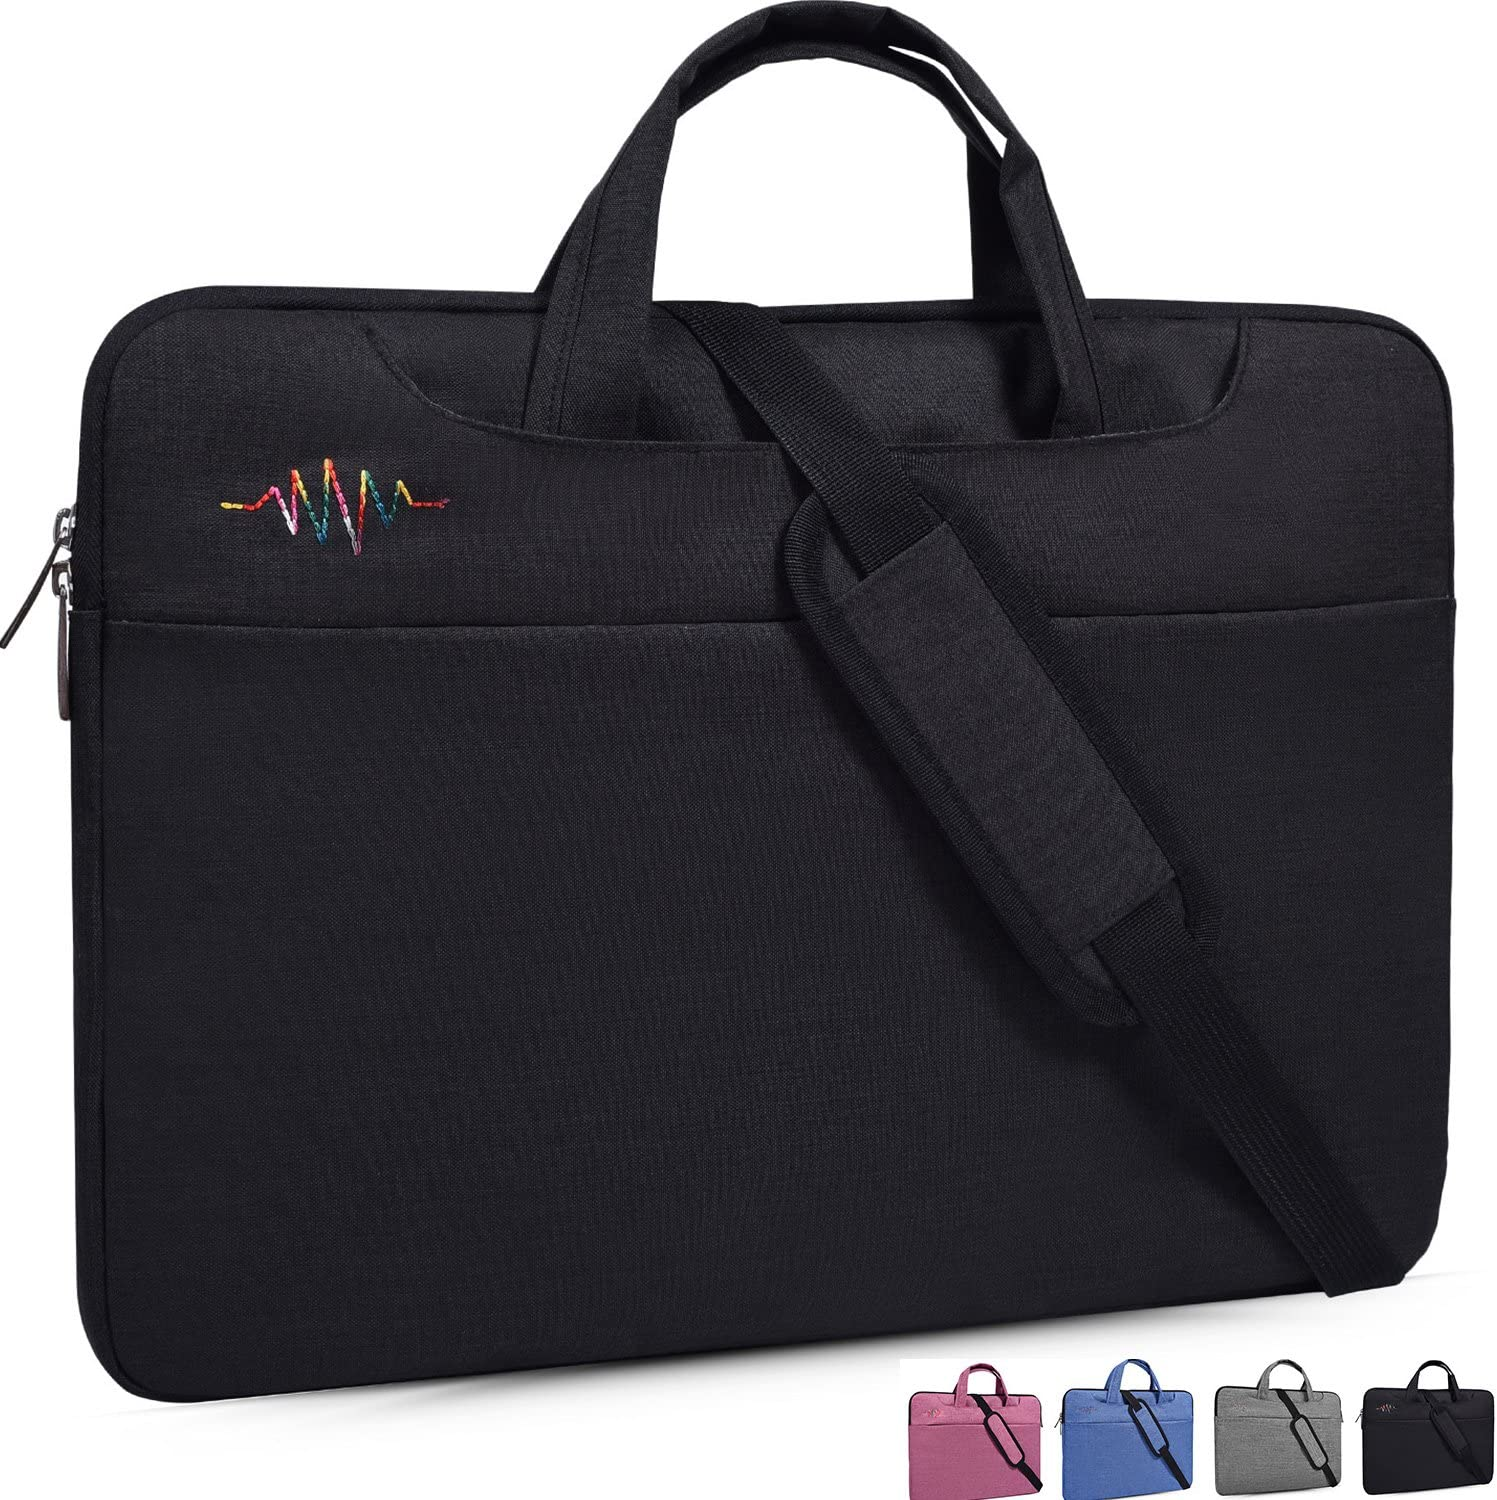 13-13.3 Inch Laptop Sleeve Case Shoulder Bag Fit MacBook Pro,MacBook Air,ASUS ZenBook,Lenovo Yoga 720,Samsung Chromebook Plus/Pro,Acer Chromebook R 13,Dell HP Spectre x360 13.3 inch Notebook bag,Black